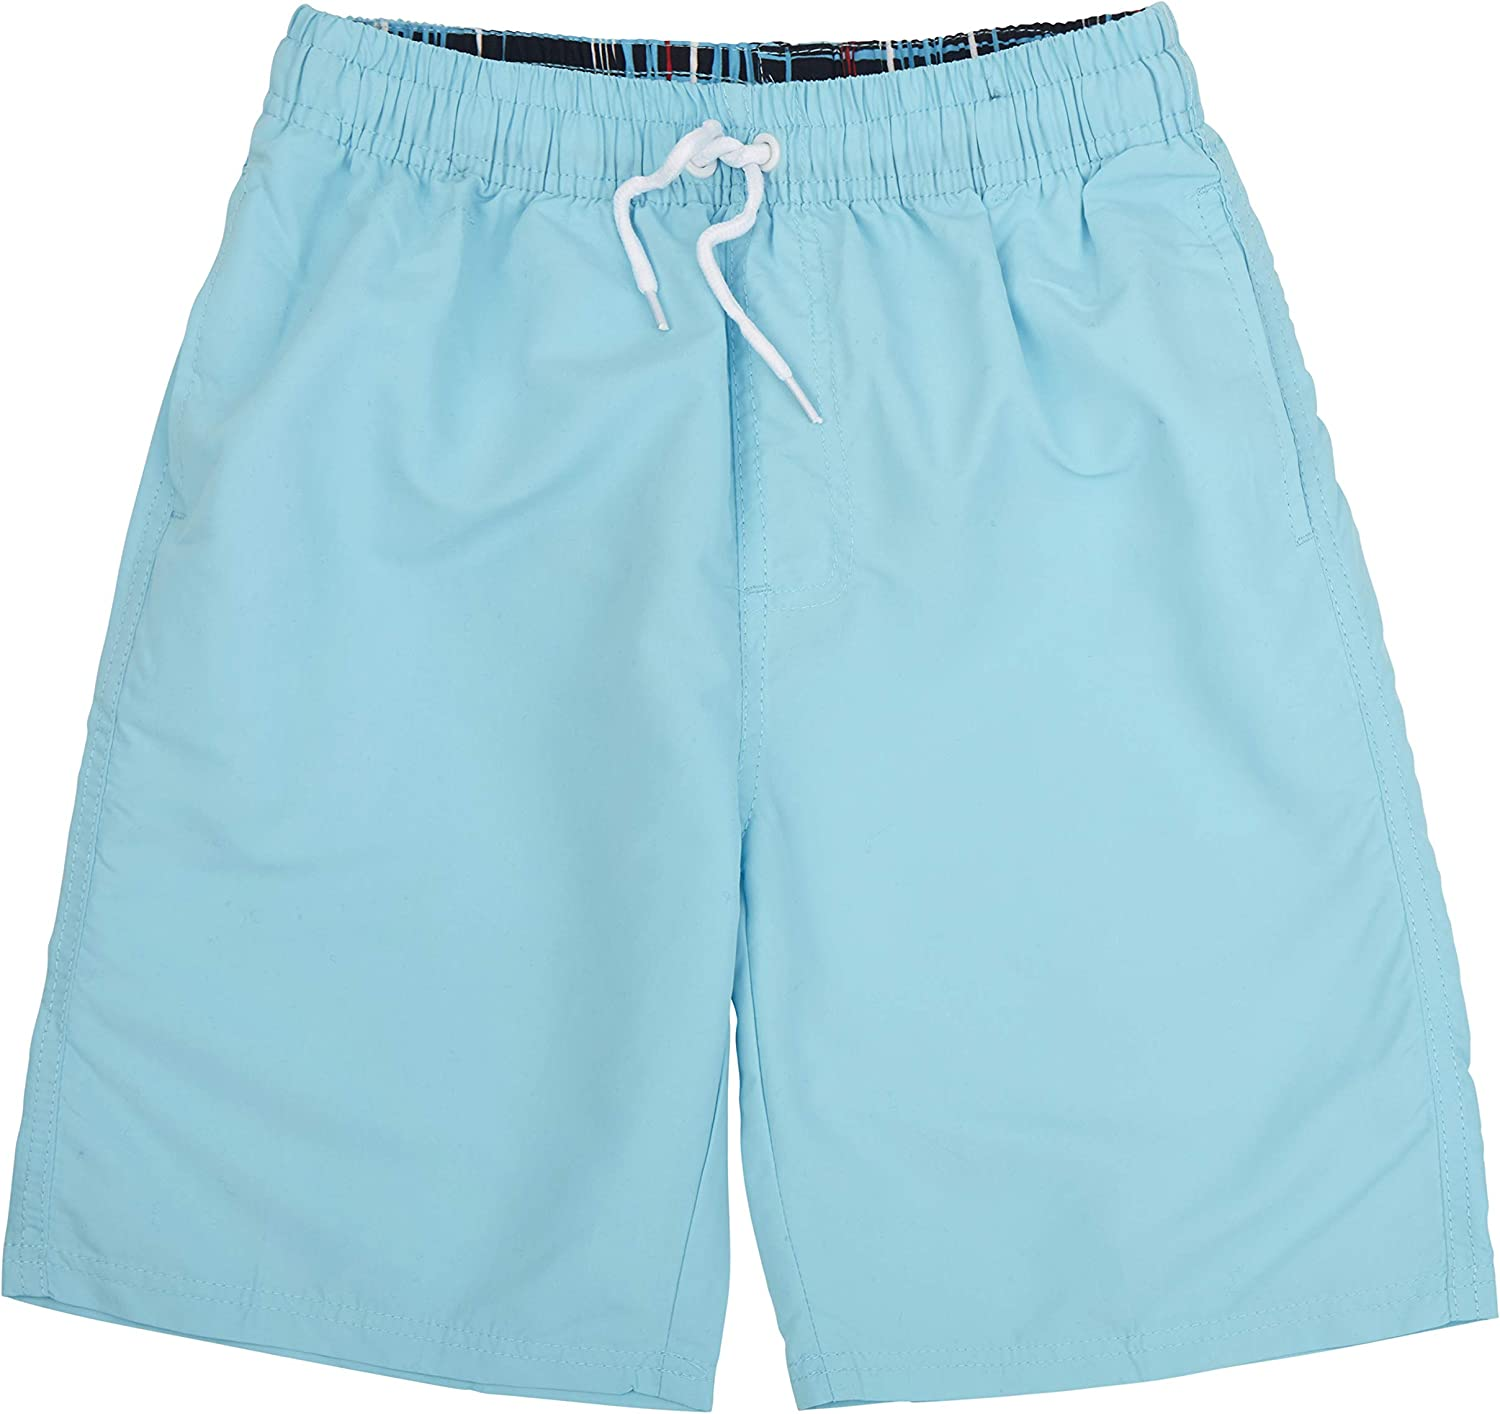 YouthQuick Dry Board Shorts with Mesh Lining ICE CROSS Older Boys Swimsuit Beach Shorts